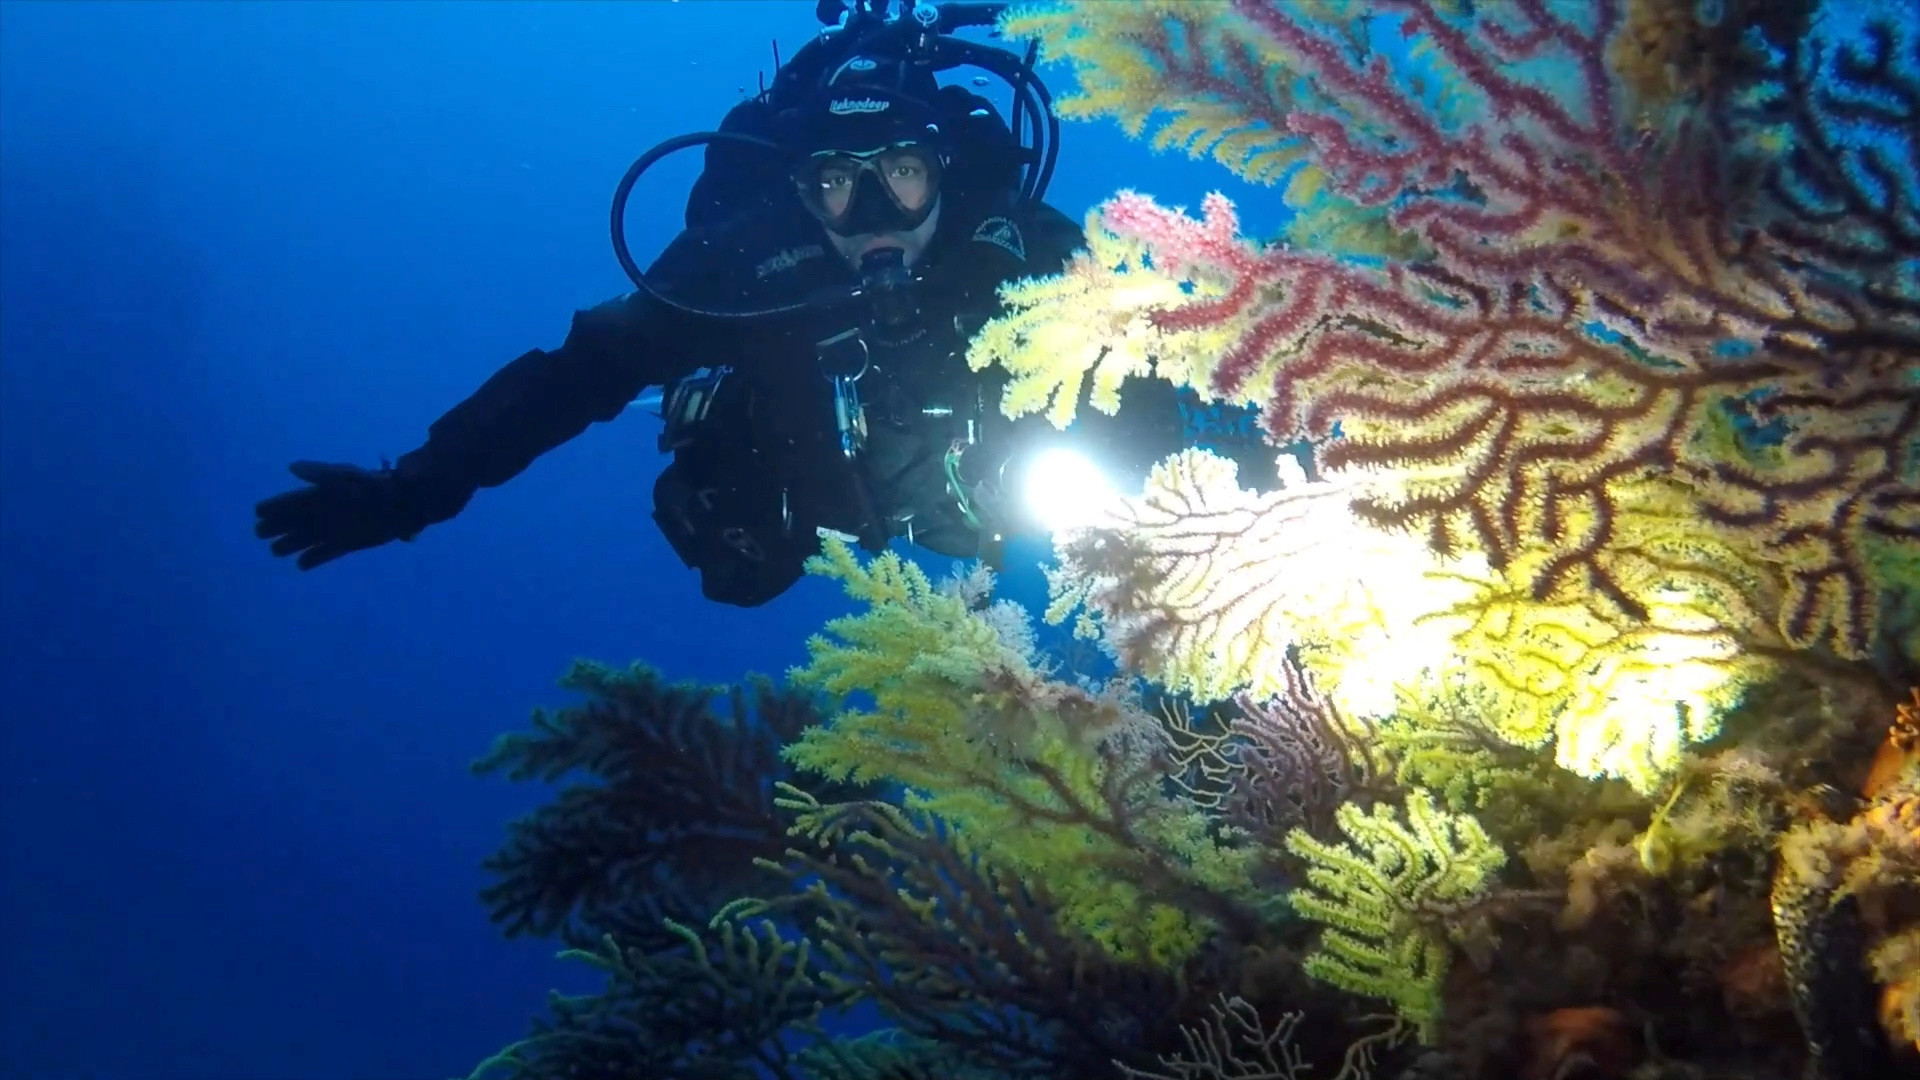 An Italian Coast Guard diver shines a torchlight on a forest of gorgonians (sea fans) and coral at the Secche di Tor Paterno, a protected marine reserve 5 miles off the coast of Rome during a study on the health of Italy's seas and improvements to marine life due to a lack of human activities during the coronavirus disease (COVID-19) lockdown, in this still picture taken from video, April 29, 2020. Picture taken April 29, 2020. Italian Coast Guard/Handout via REUTERS THIS IMAGE HAS BEEN SUPPLIED BY A THIRD PARTY. MANDATORY CREDIT. - RC2MNH9GYLVO